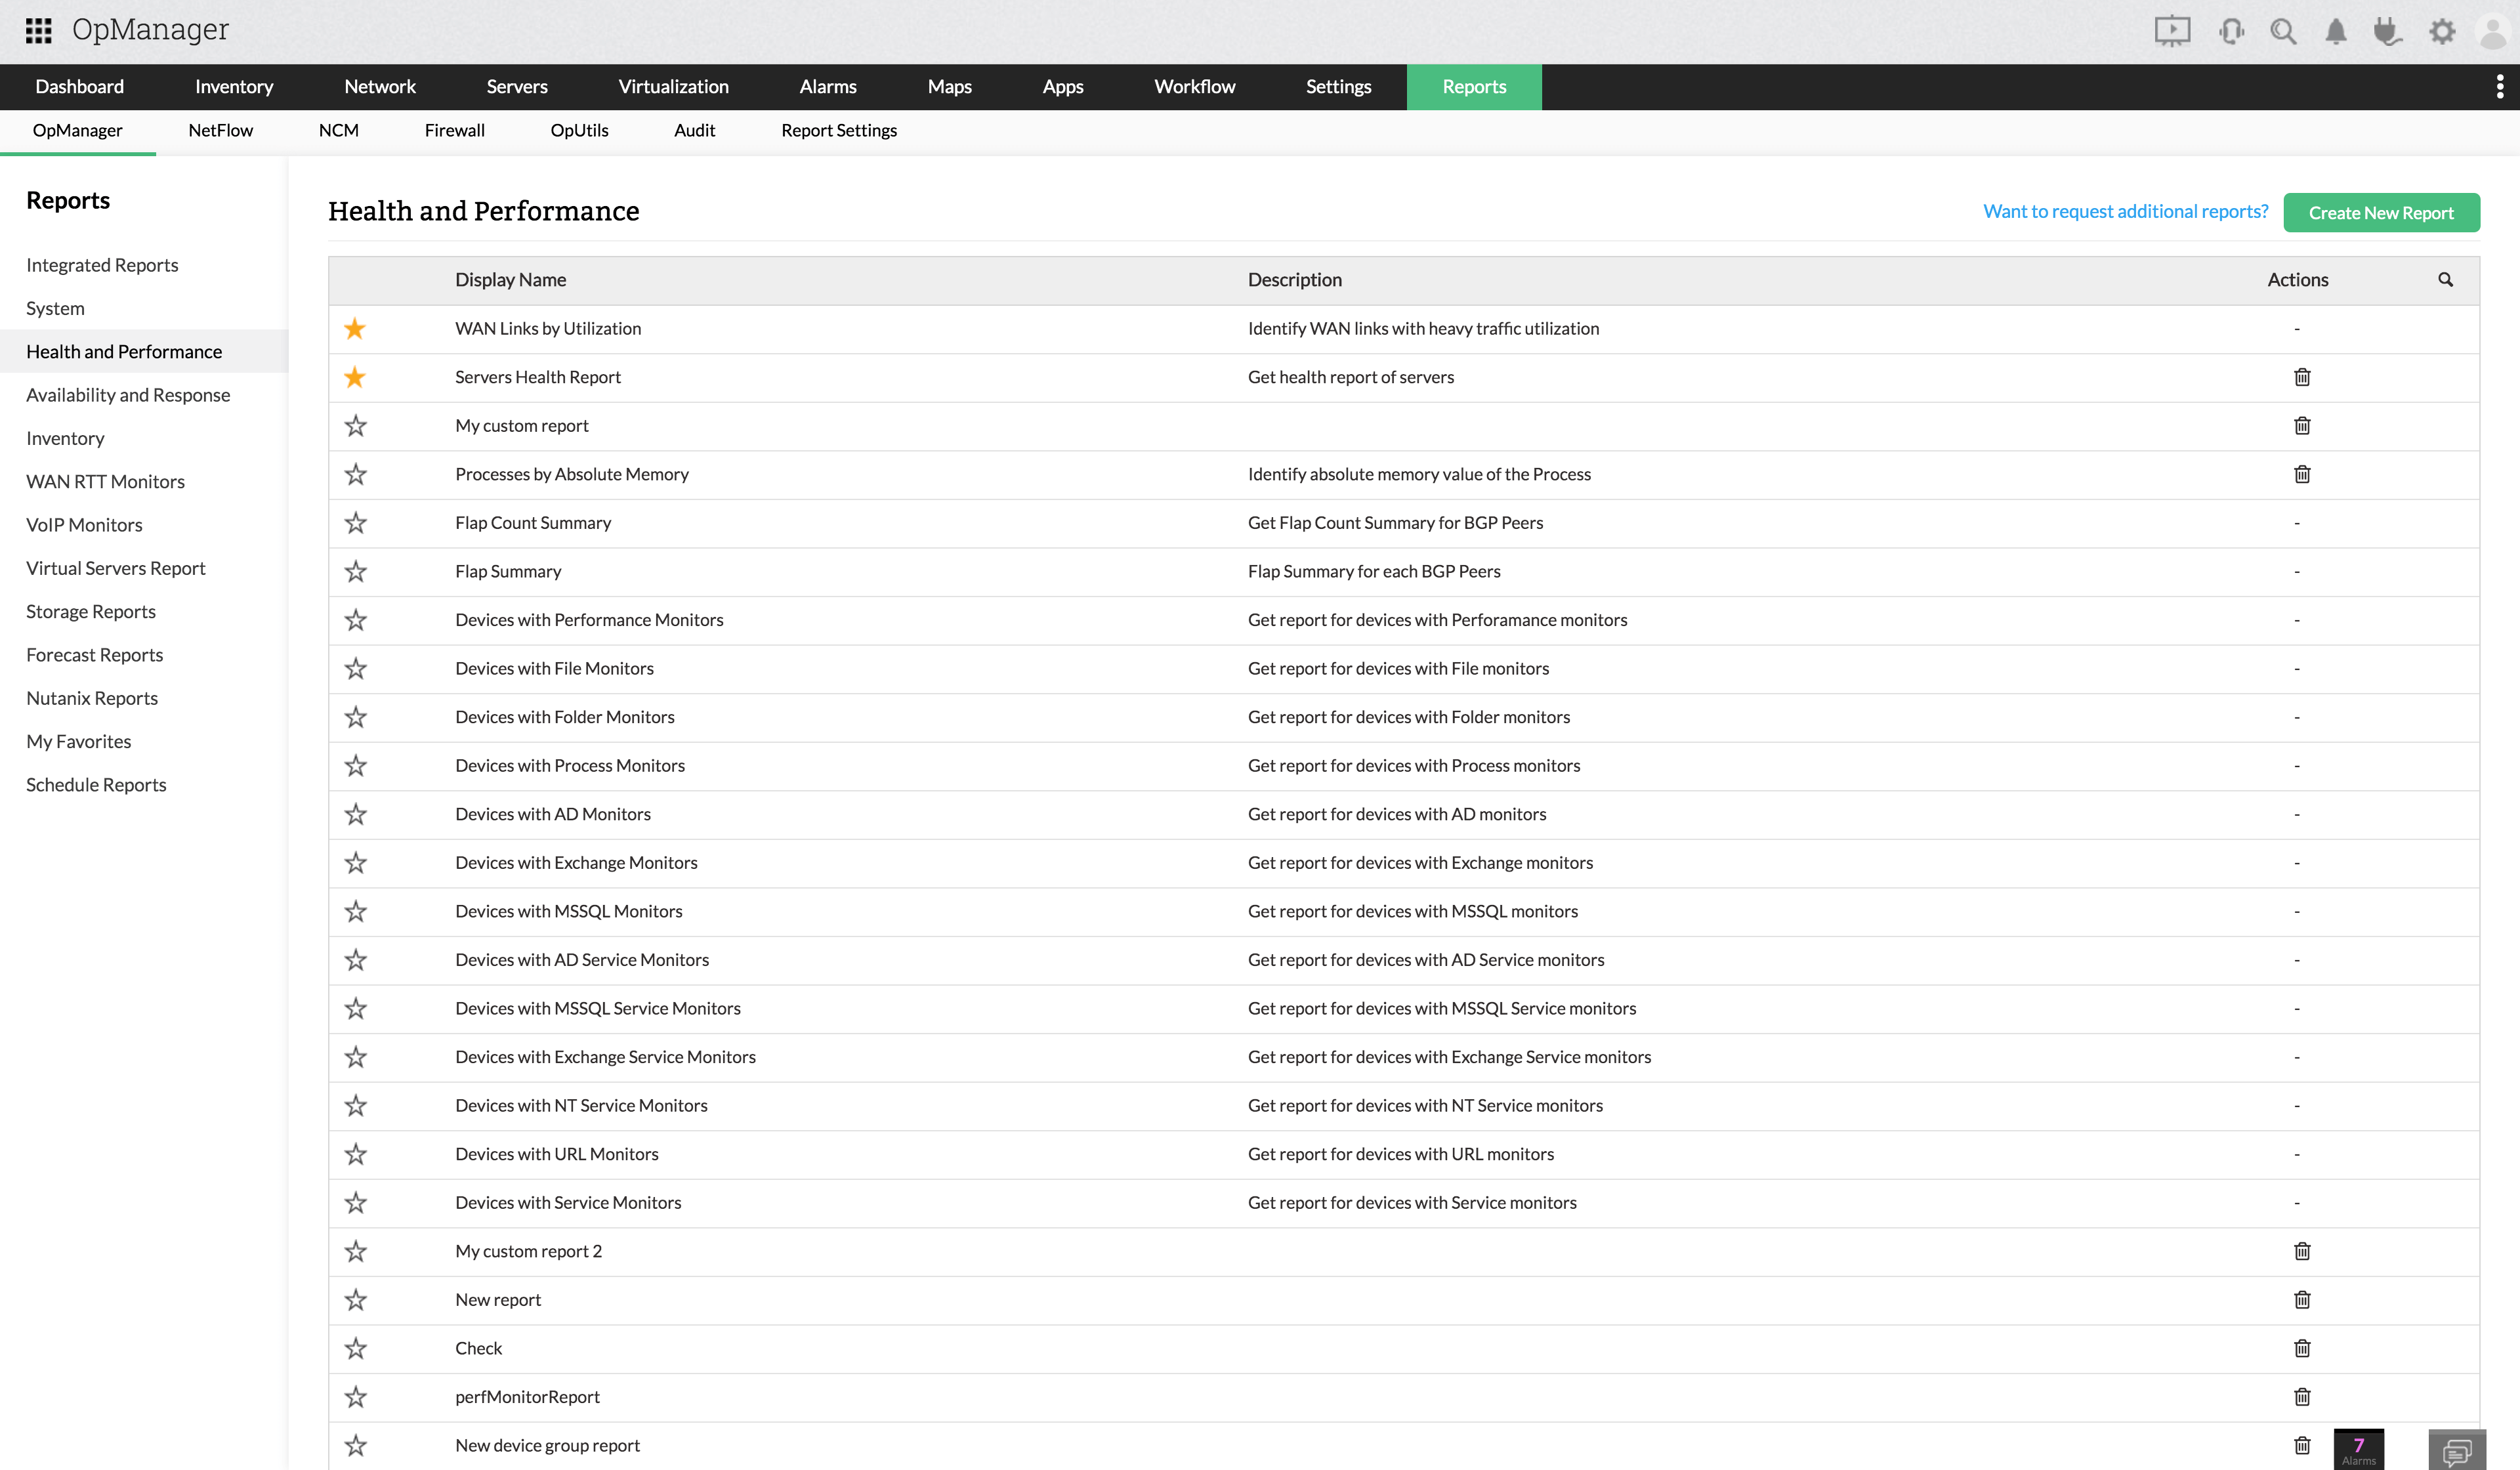 ESX reports - ManageEngine OpManager